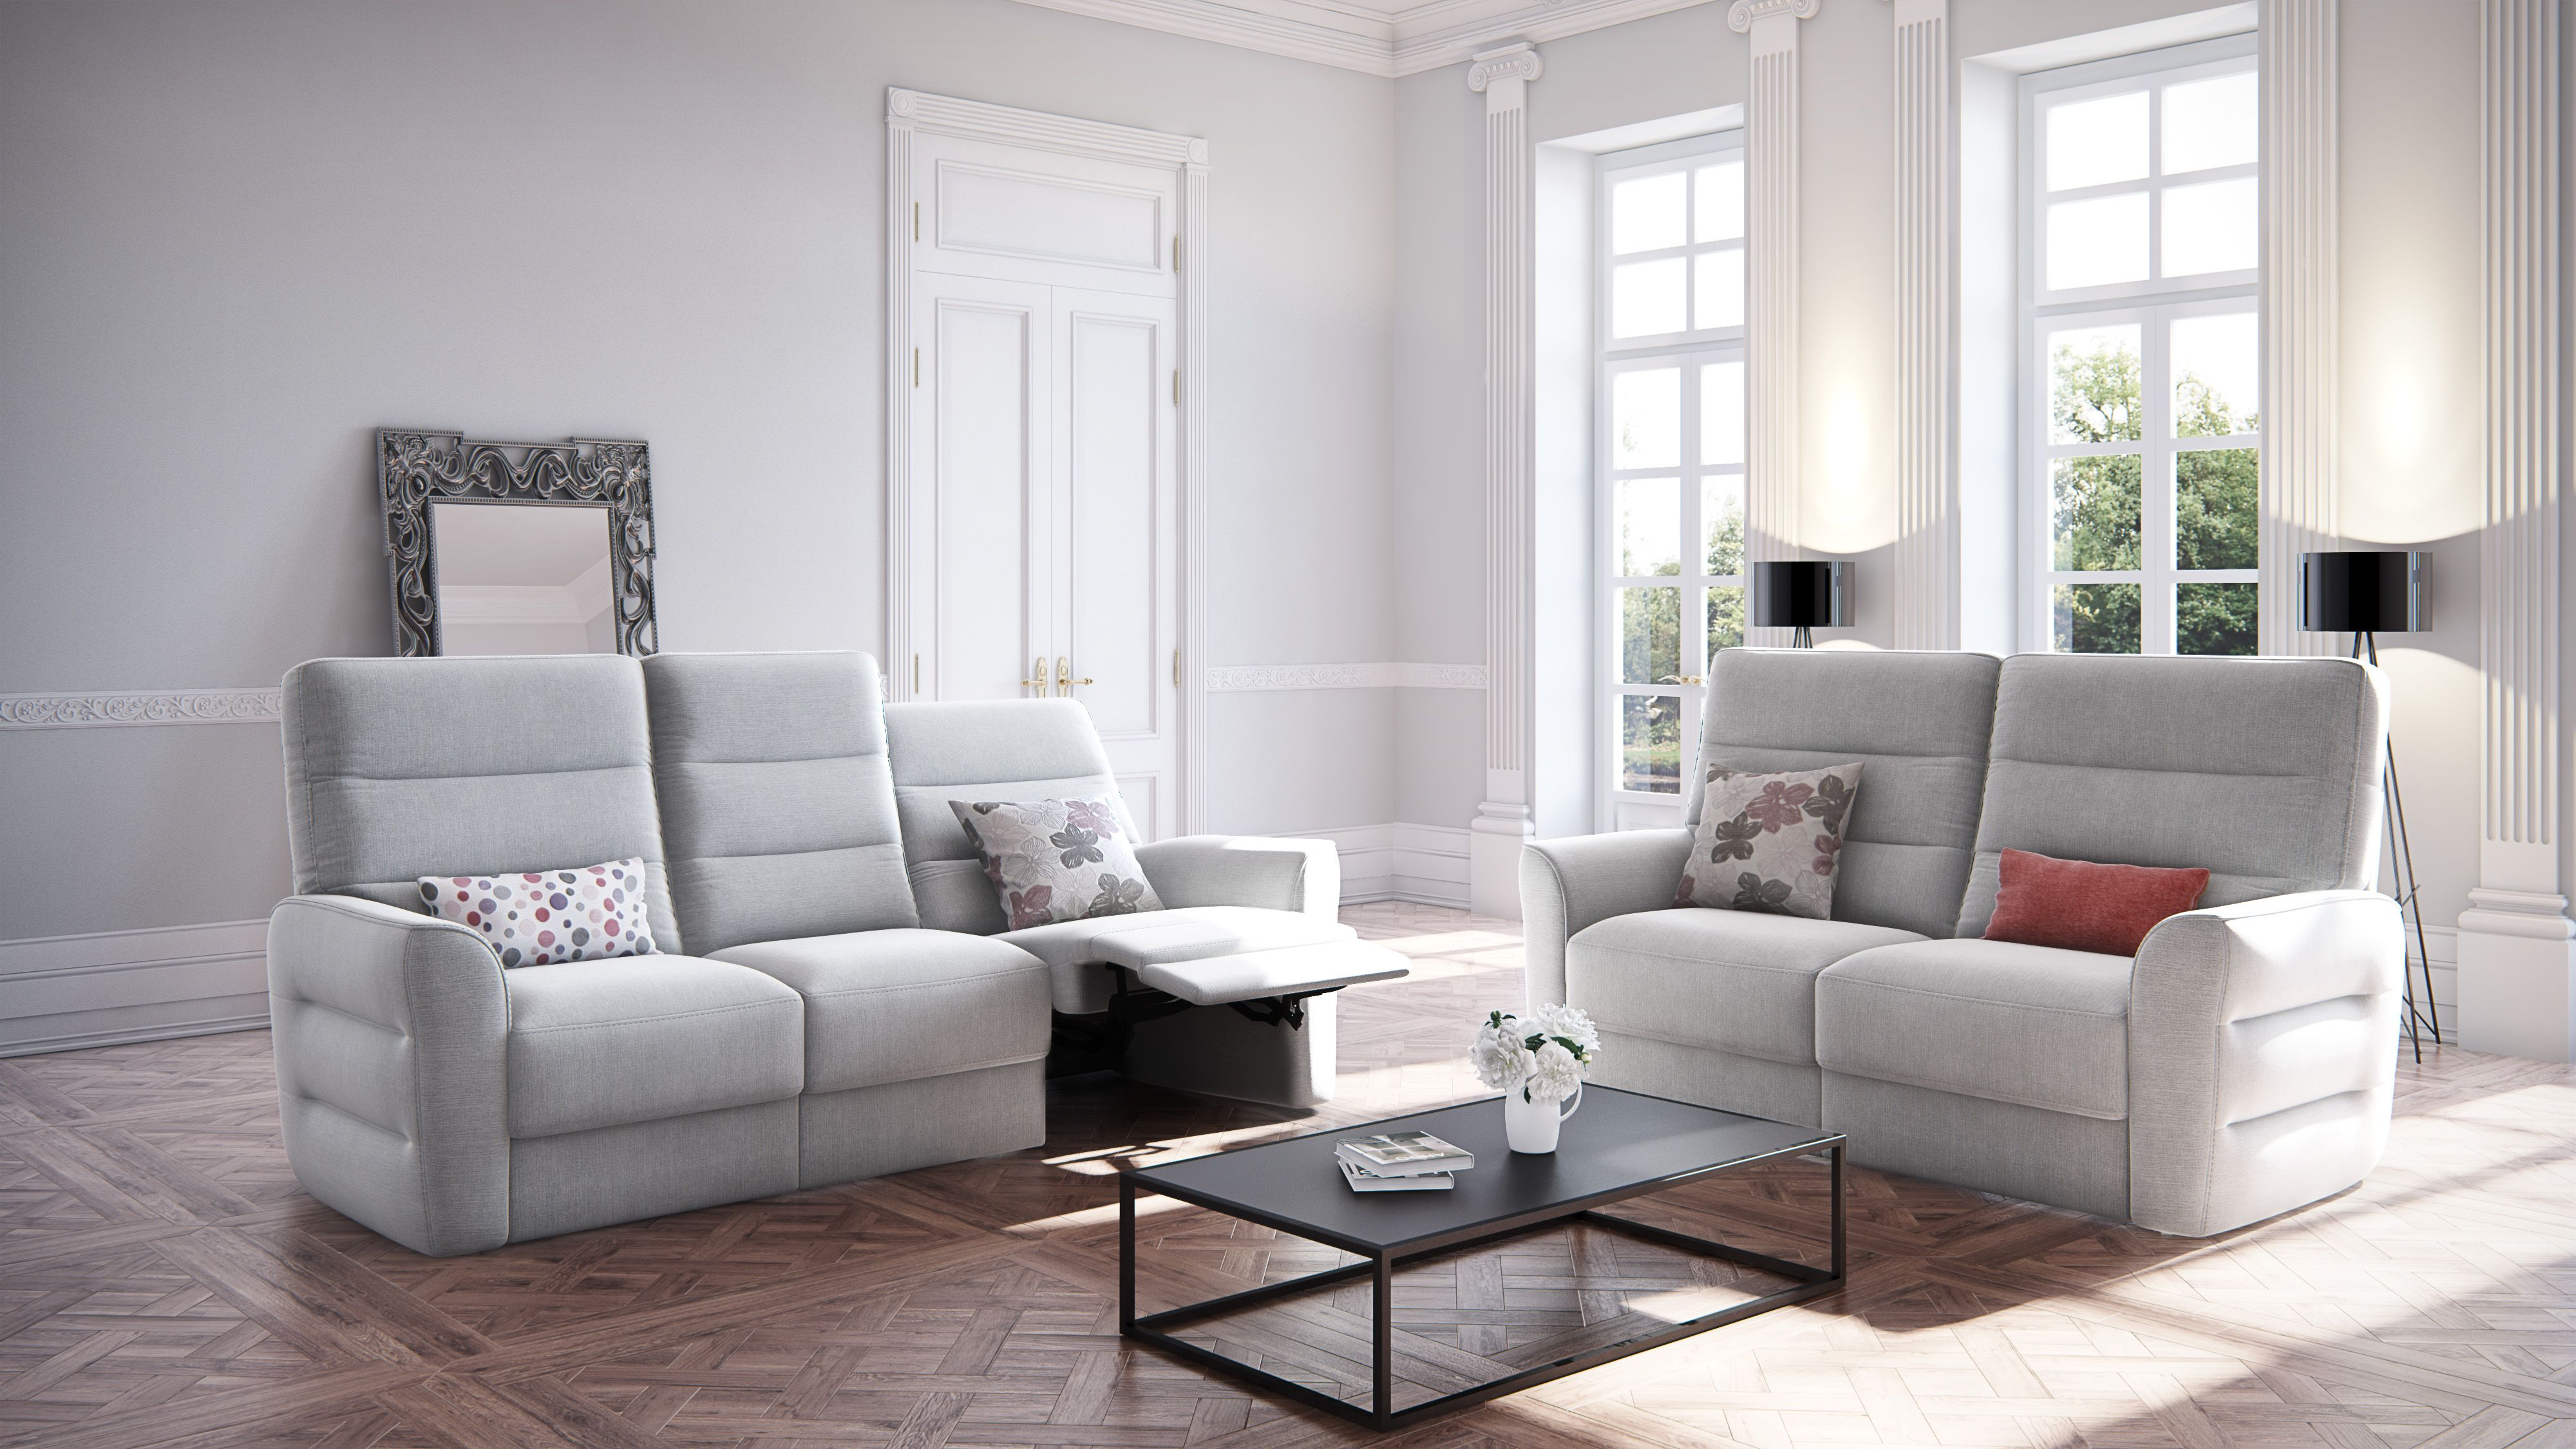 bining both fort and function perfectly Bellona Sofa from